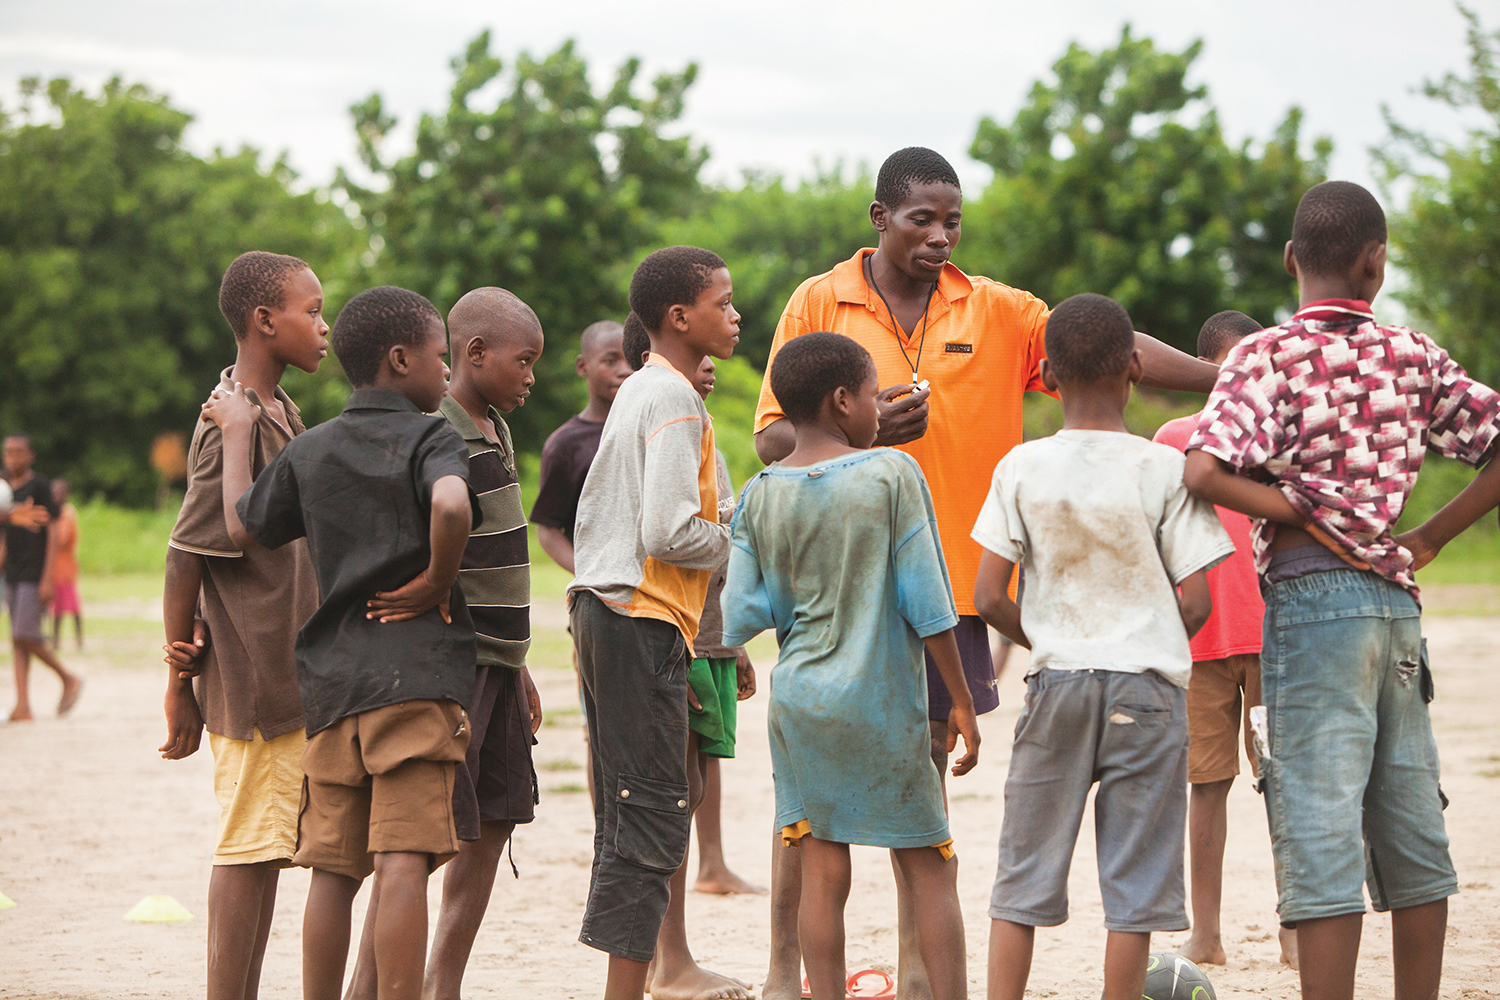 A Sports Friends coach training kids in Malawi. Besides South East Asia, where Coach Ben lives, Sports Friends operates in Africa and South America - photo by Erin Kranz